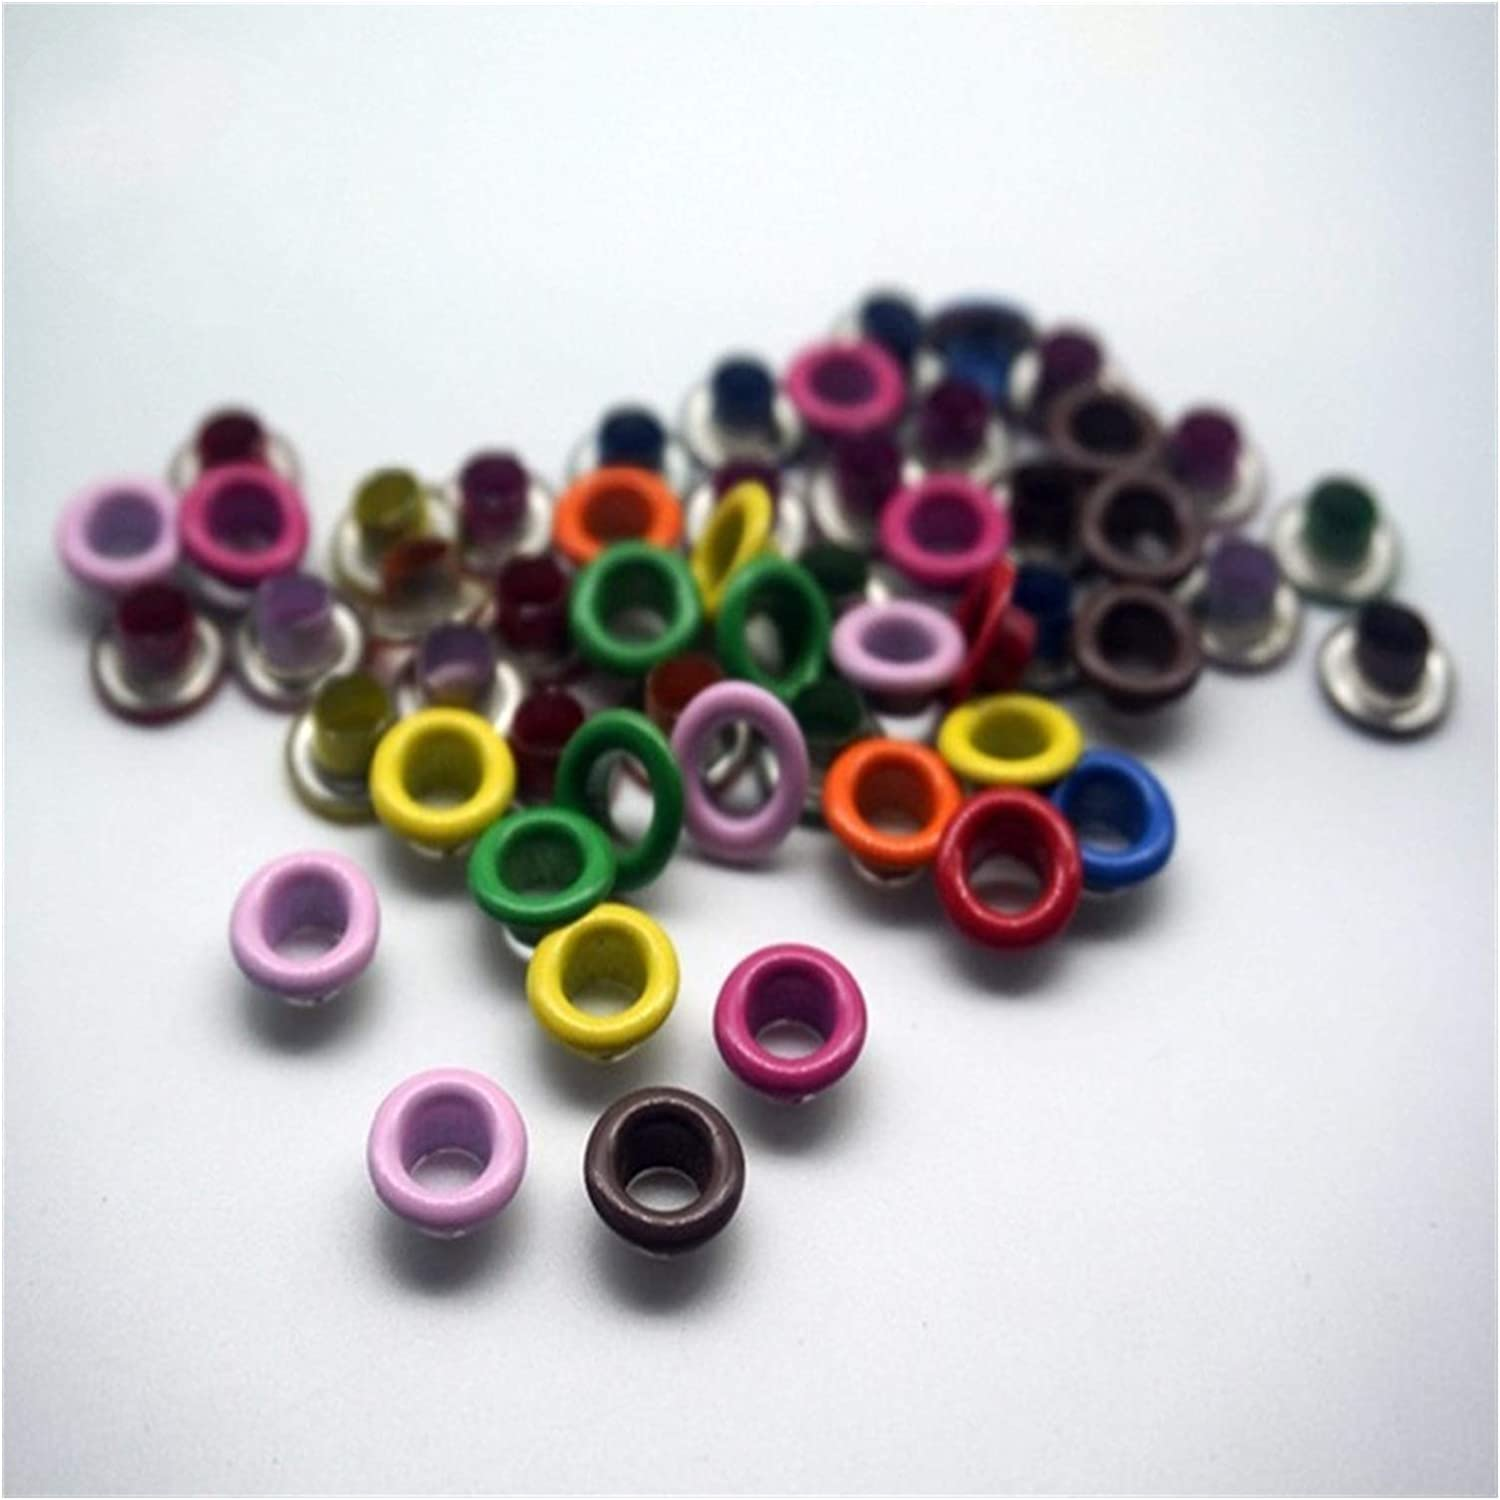 WSRZQ Setting Tool 100pcs Some Color Mixed Eyelets Inner Hole 5m